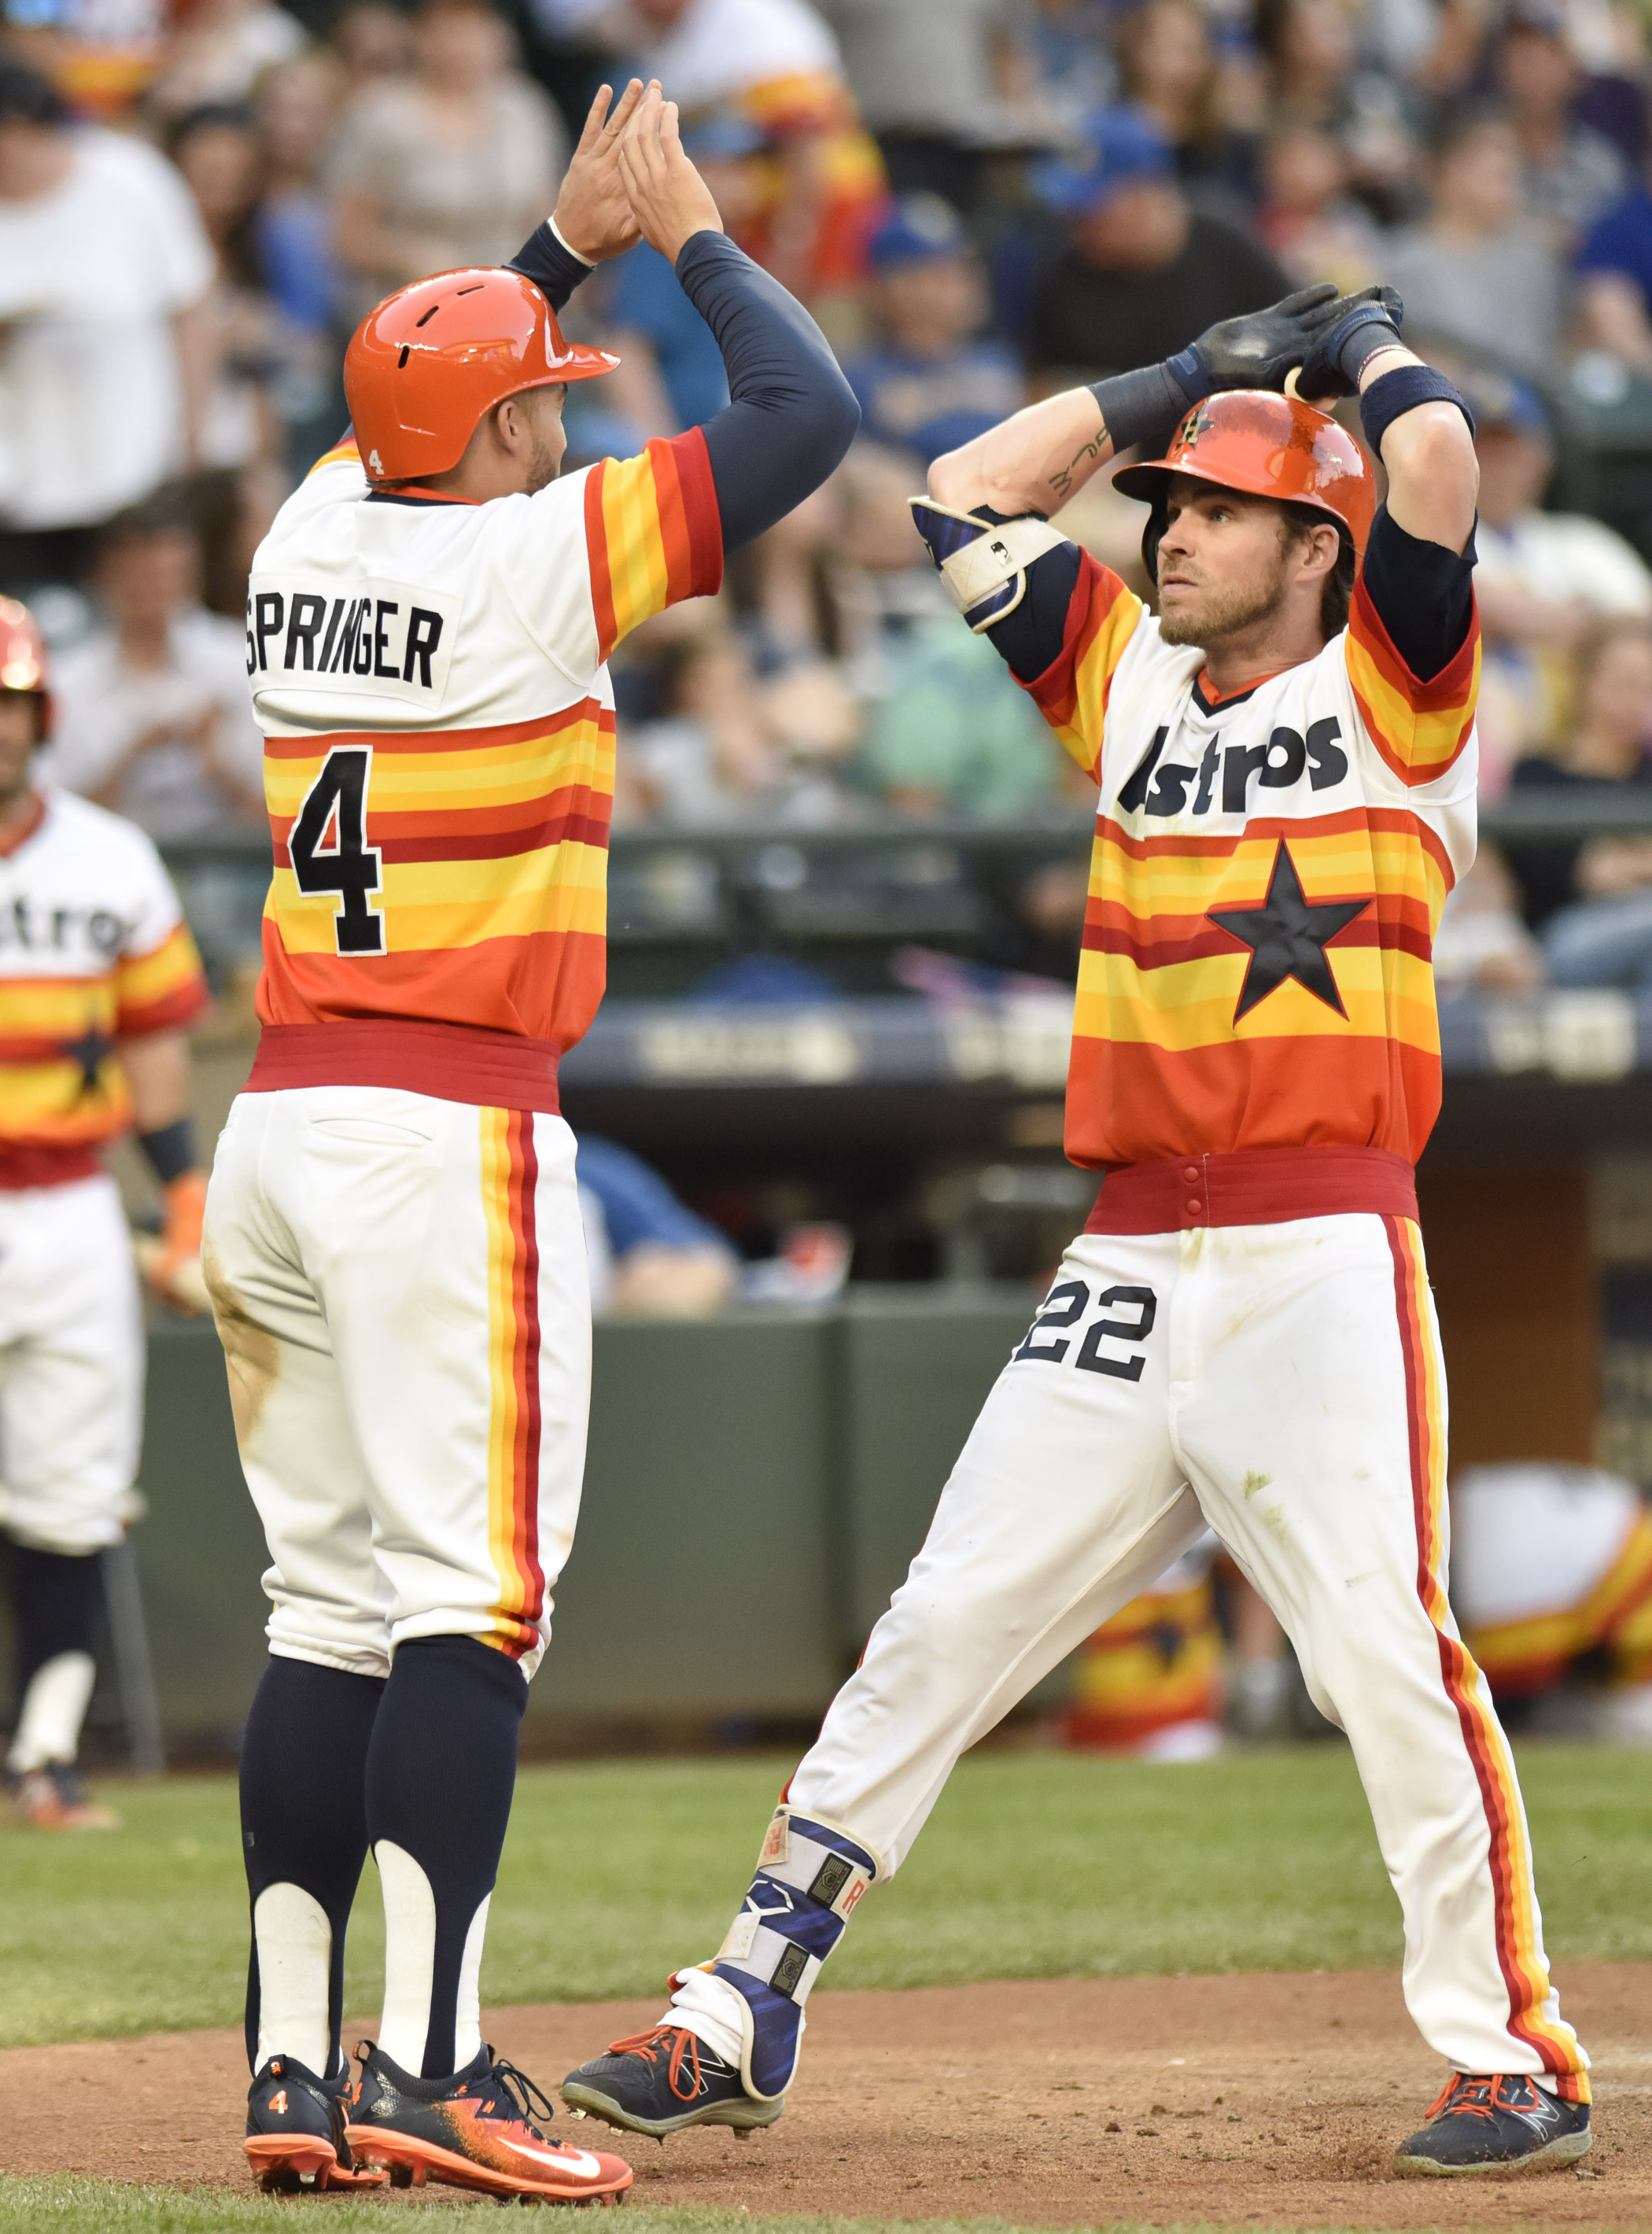 c7b873040dd Astros wear throwback uniforms in Seattle - The Crawfish Boxes